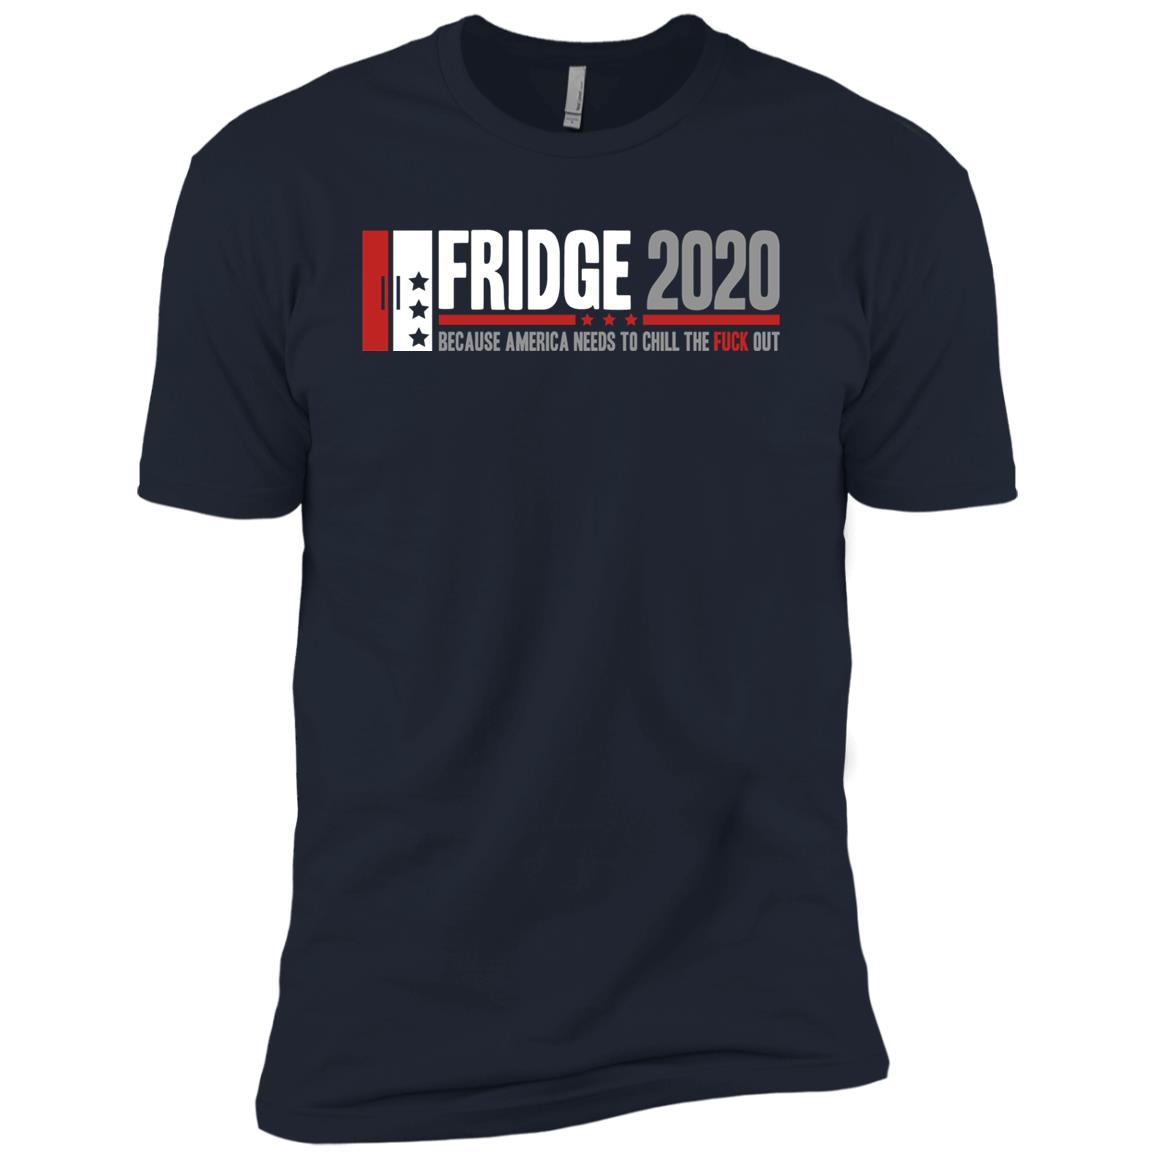 T-Shirts - Fridge 2020 Premium Tee